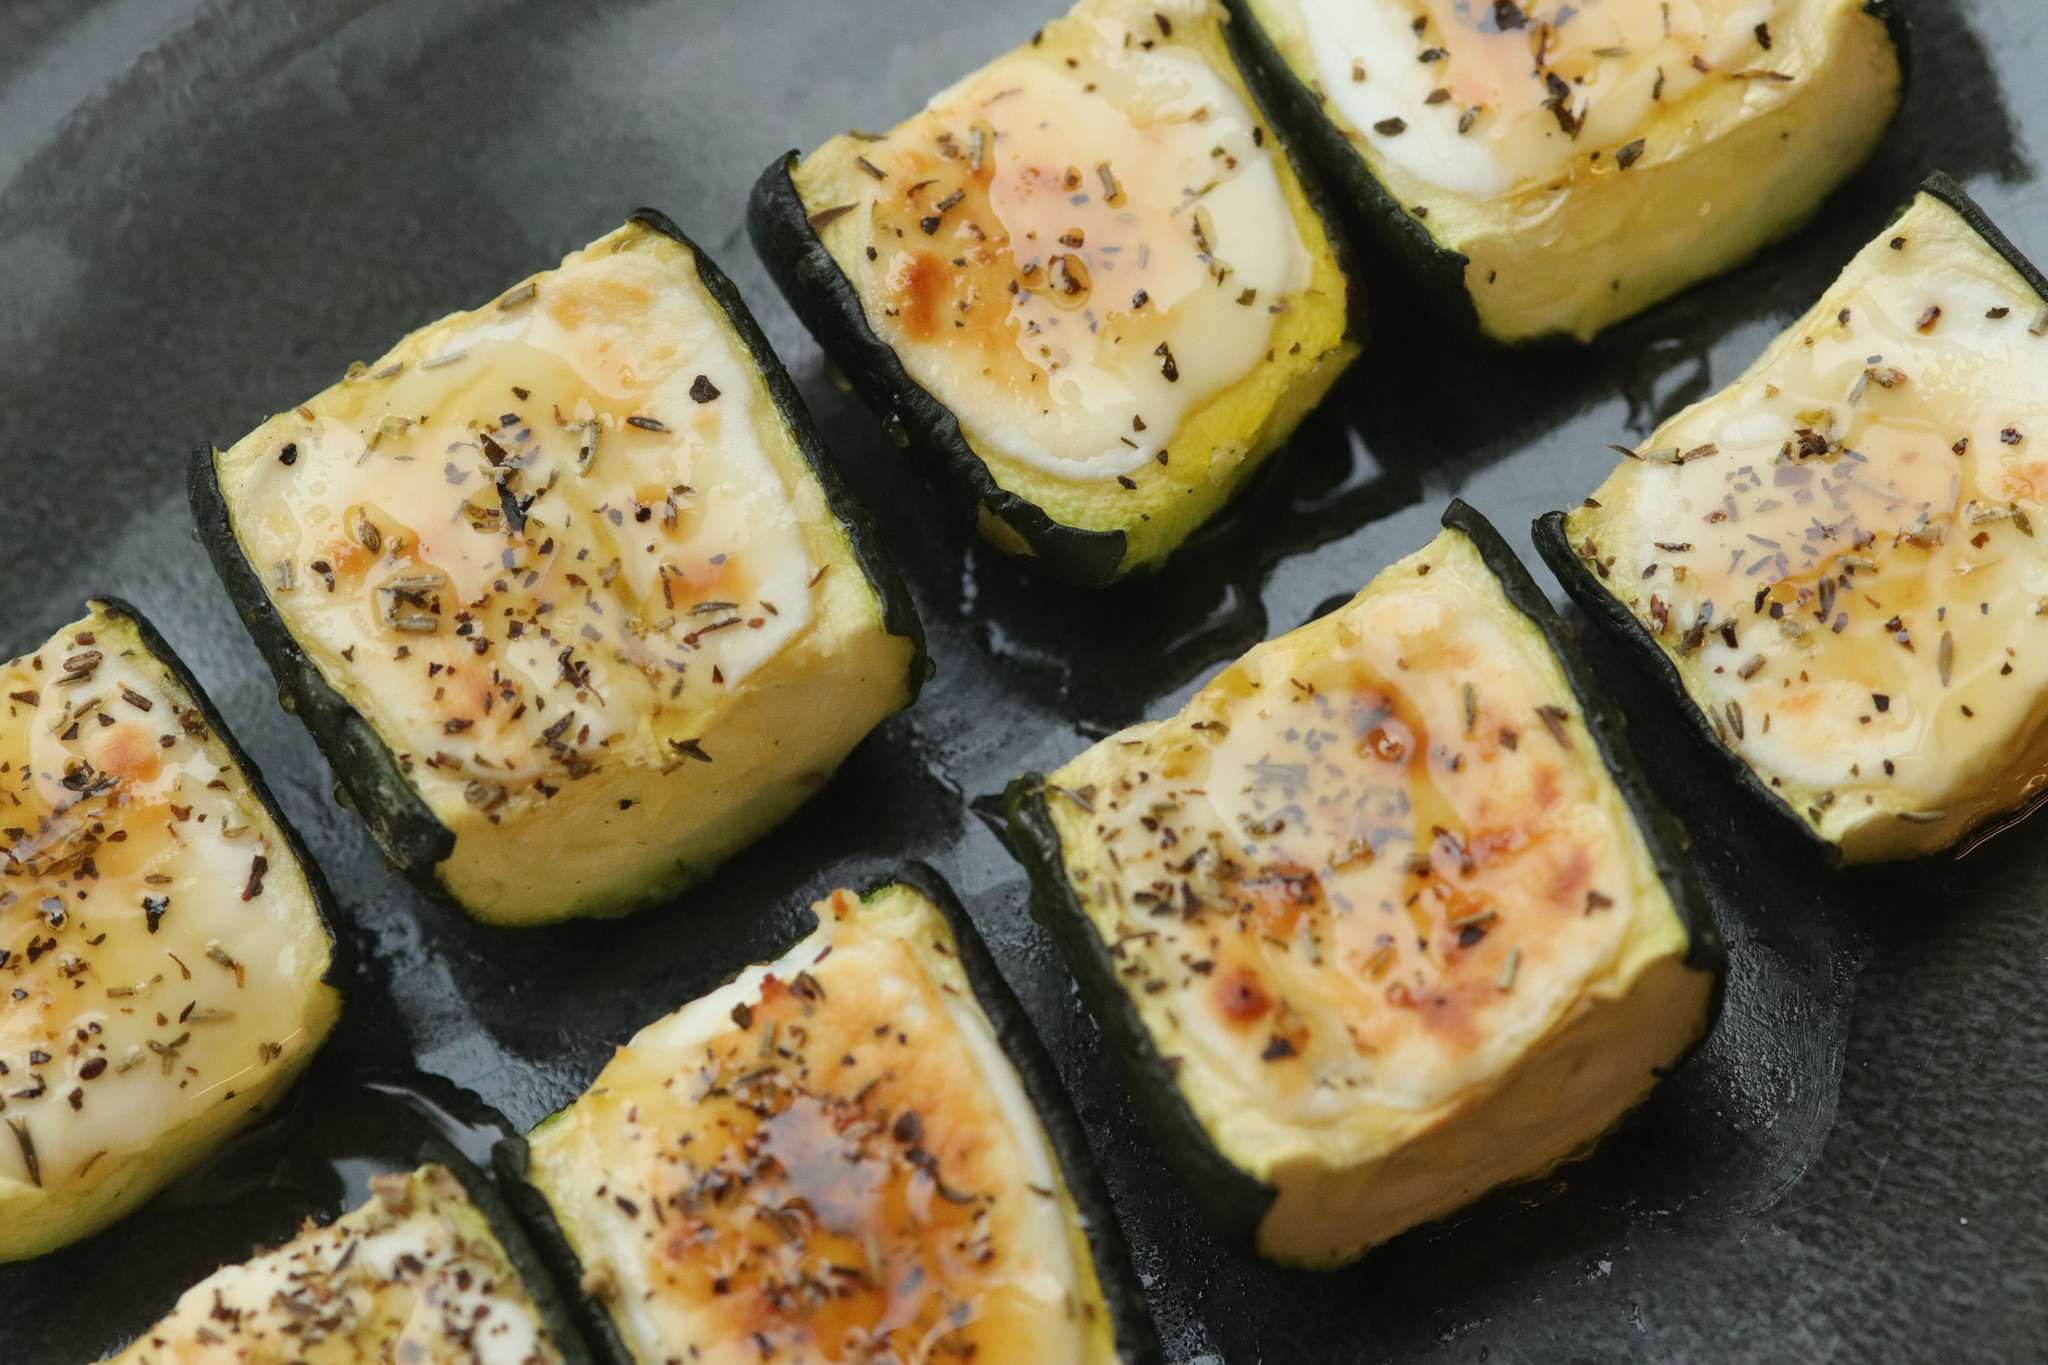 Zucchini with goat cheese and honey-1